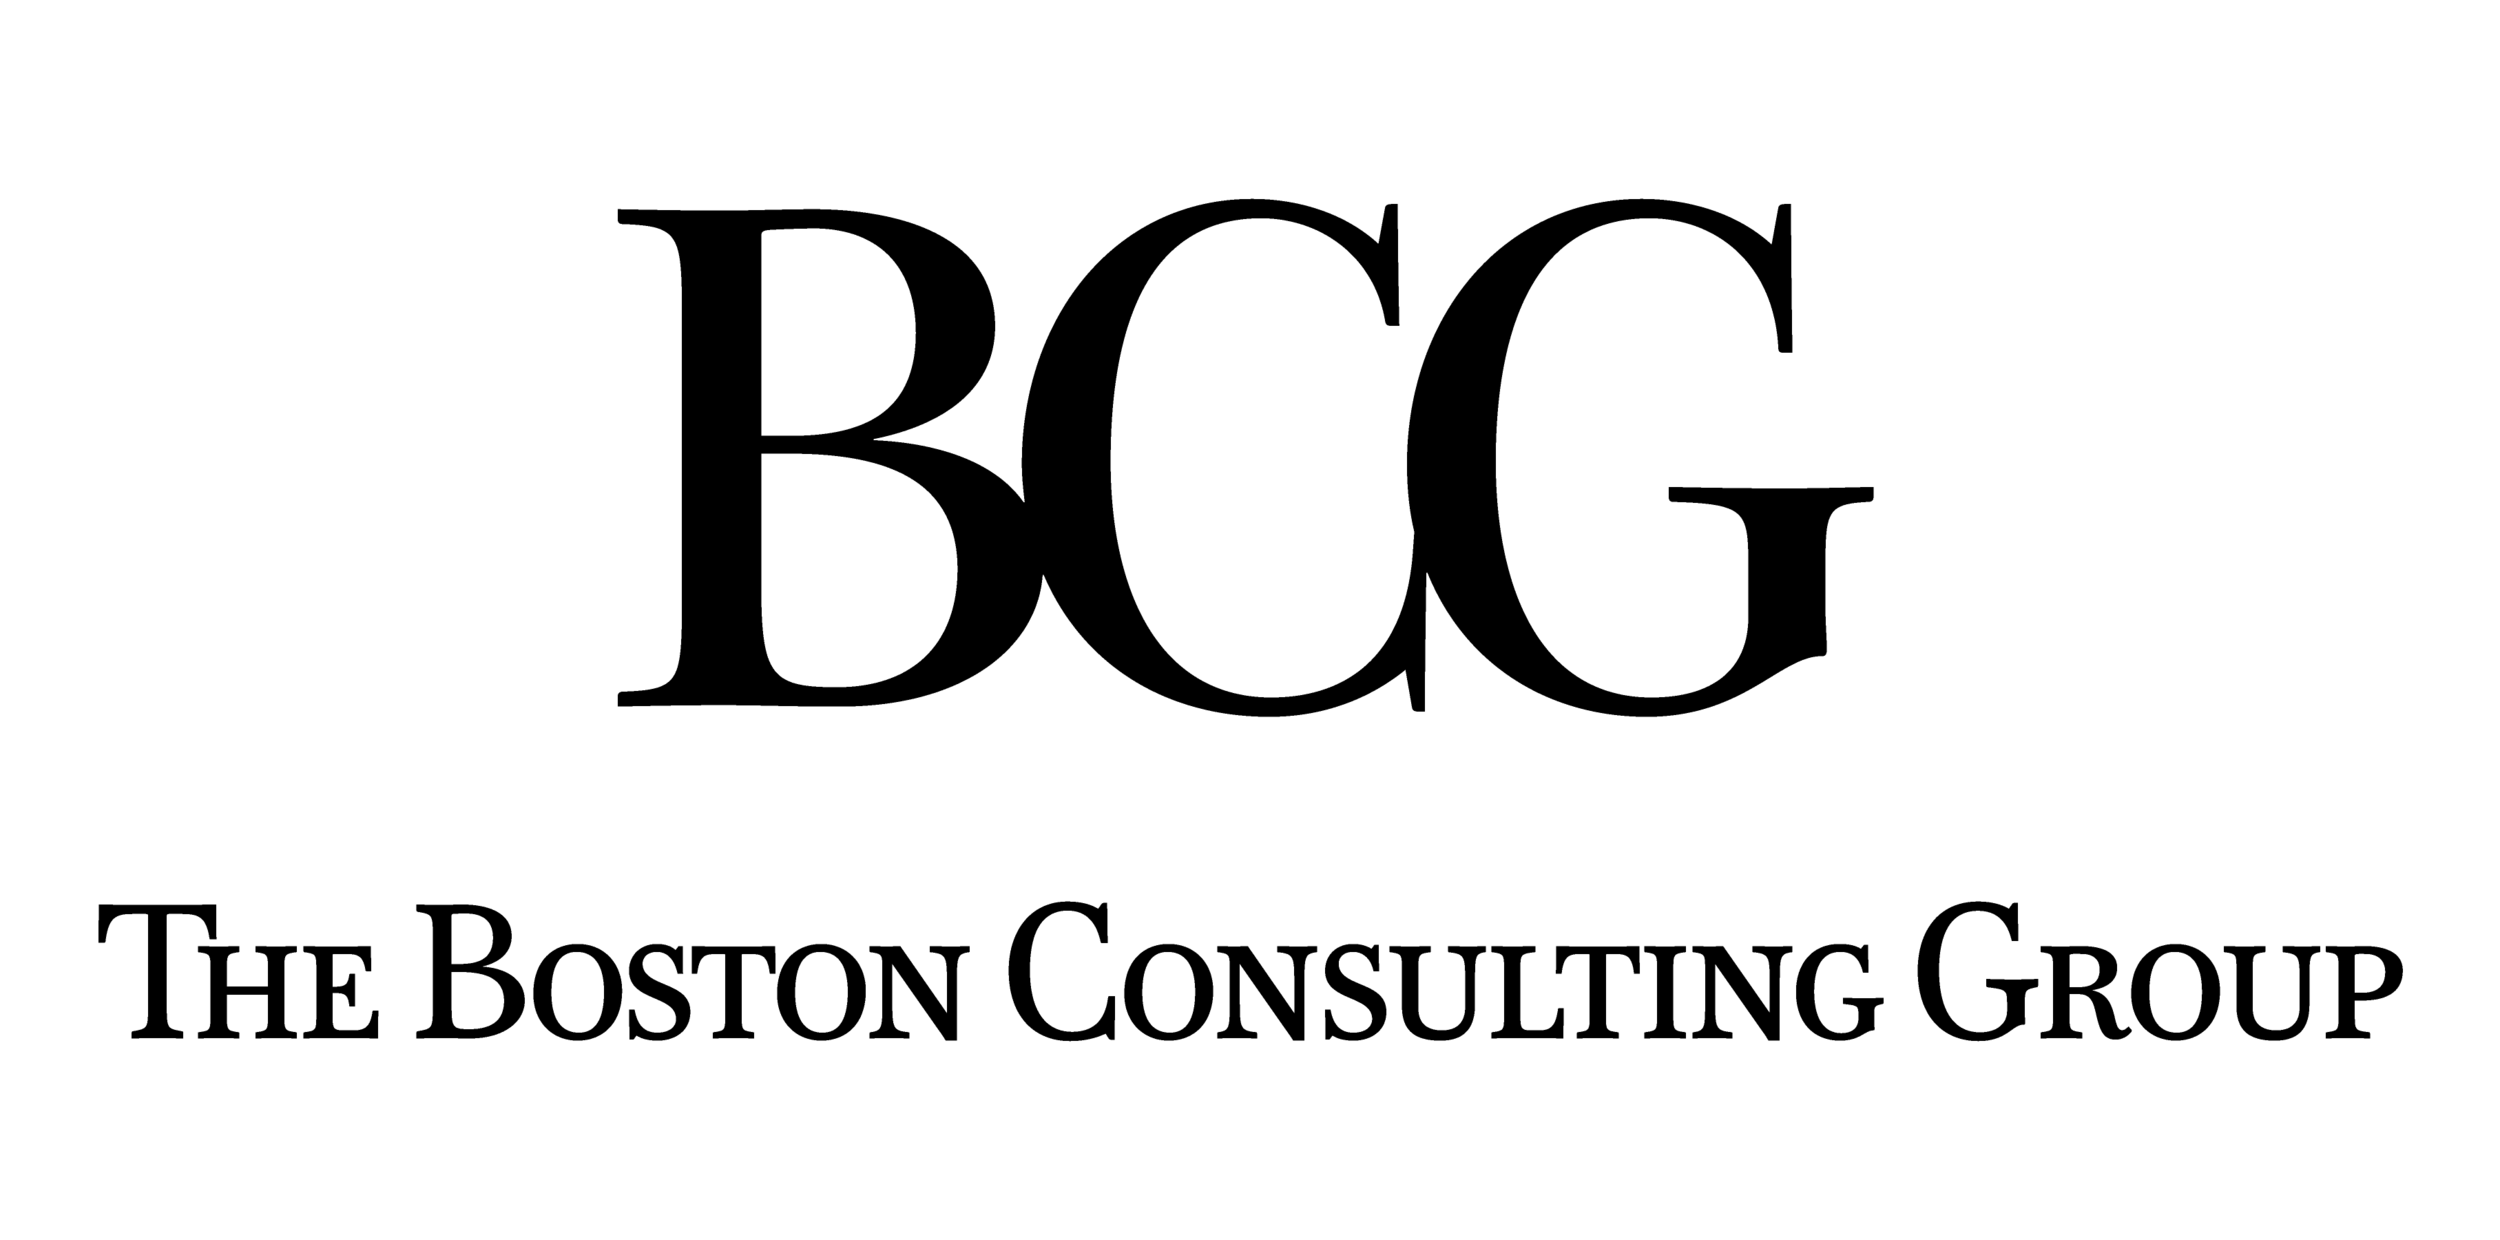 the-boston-consulting-groupe-bcg-logotype.png